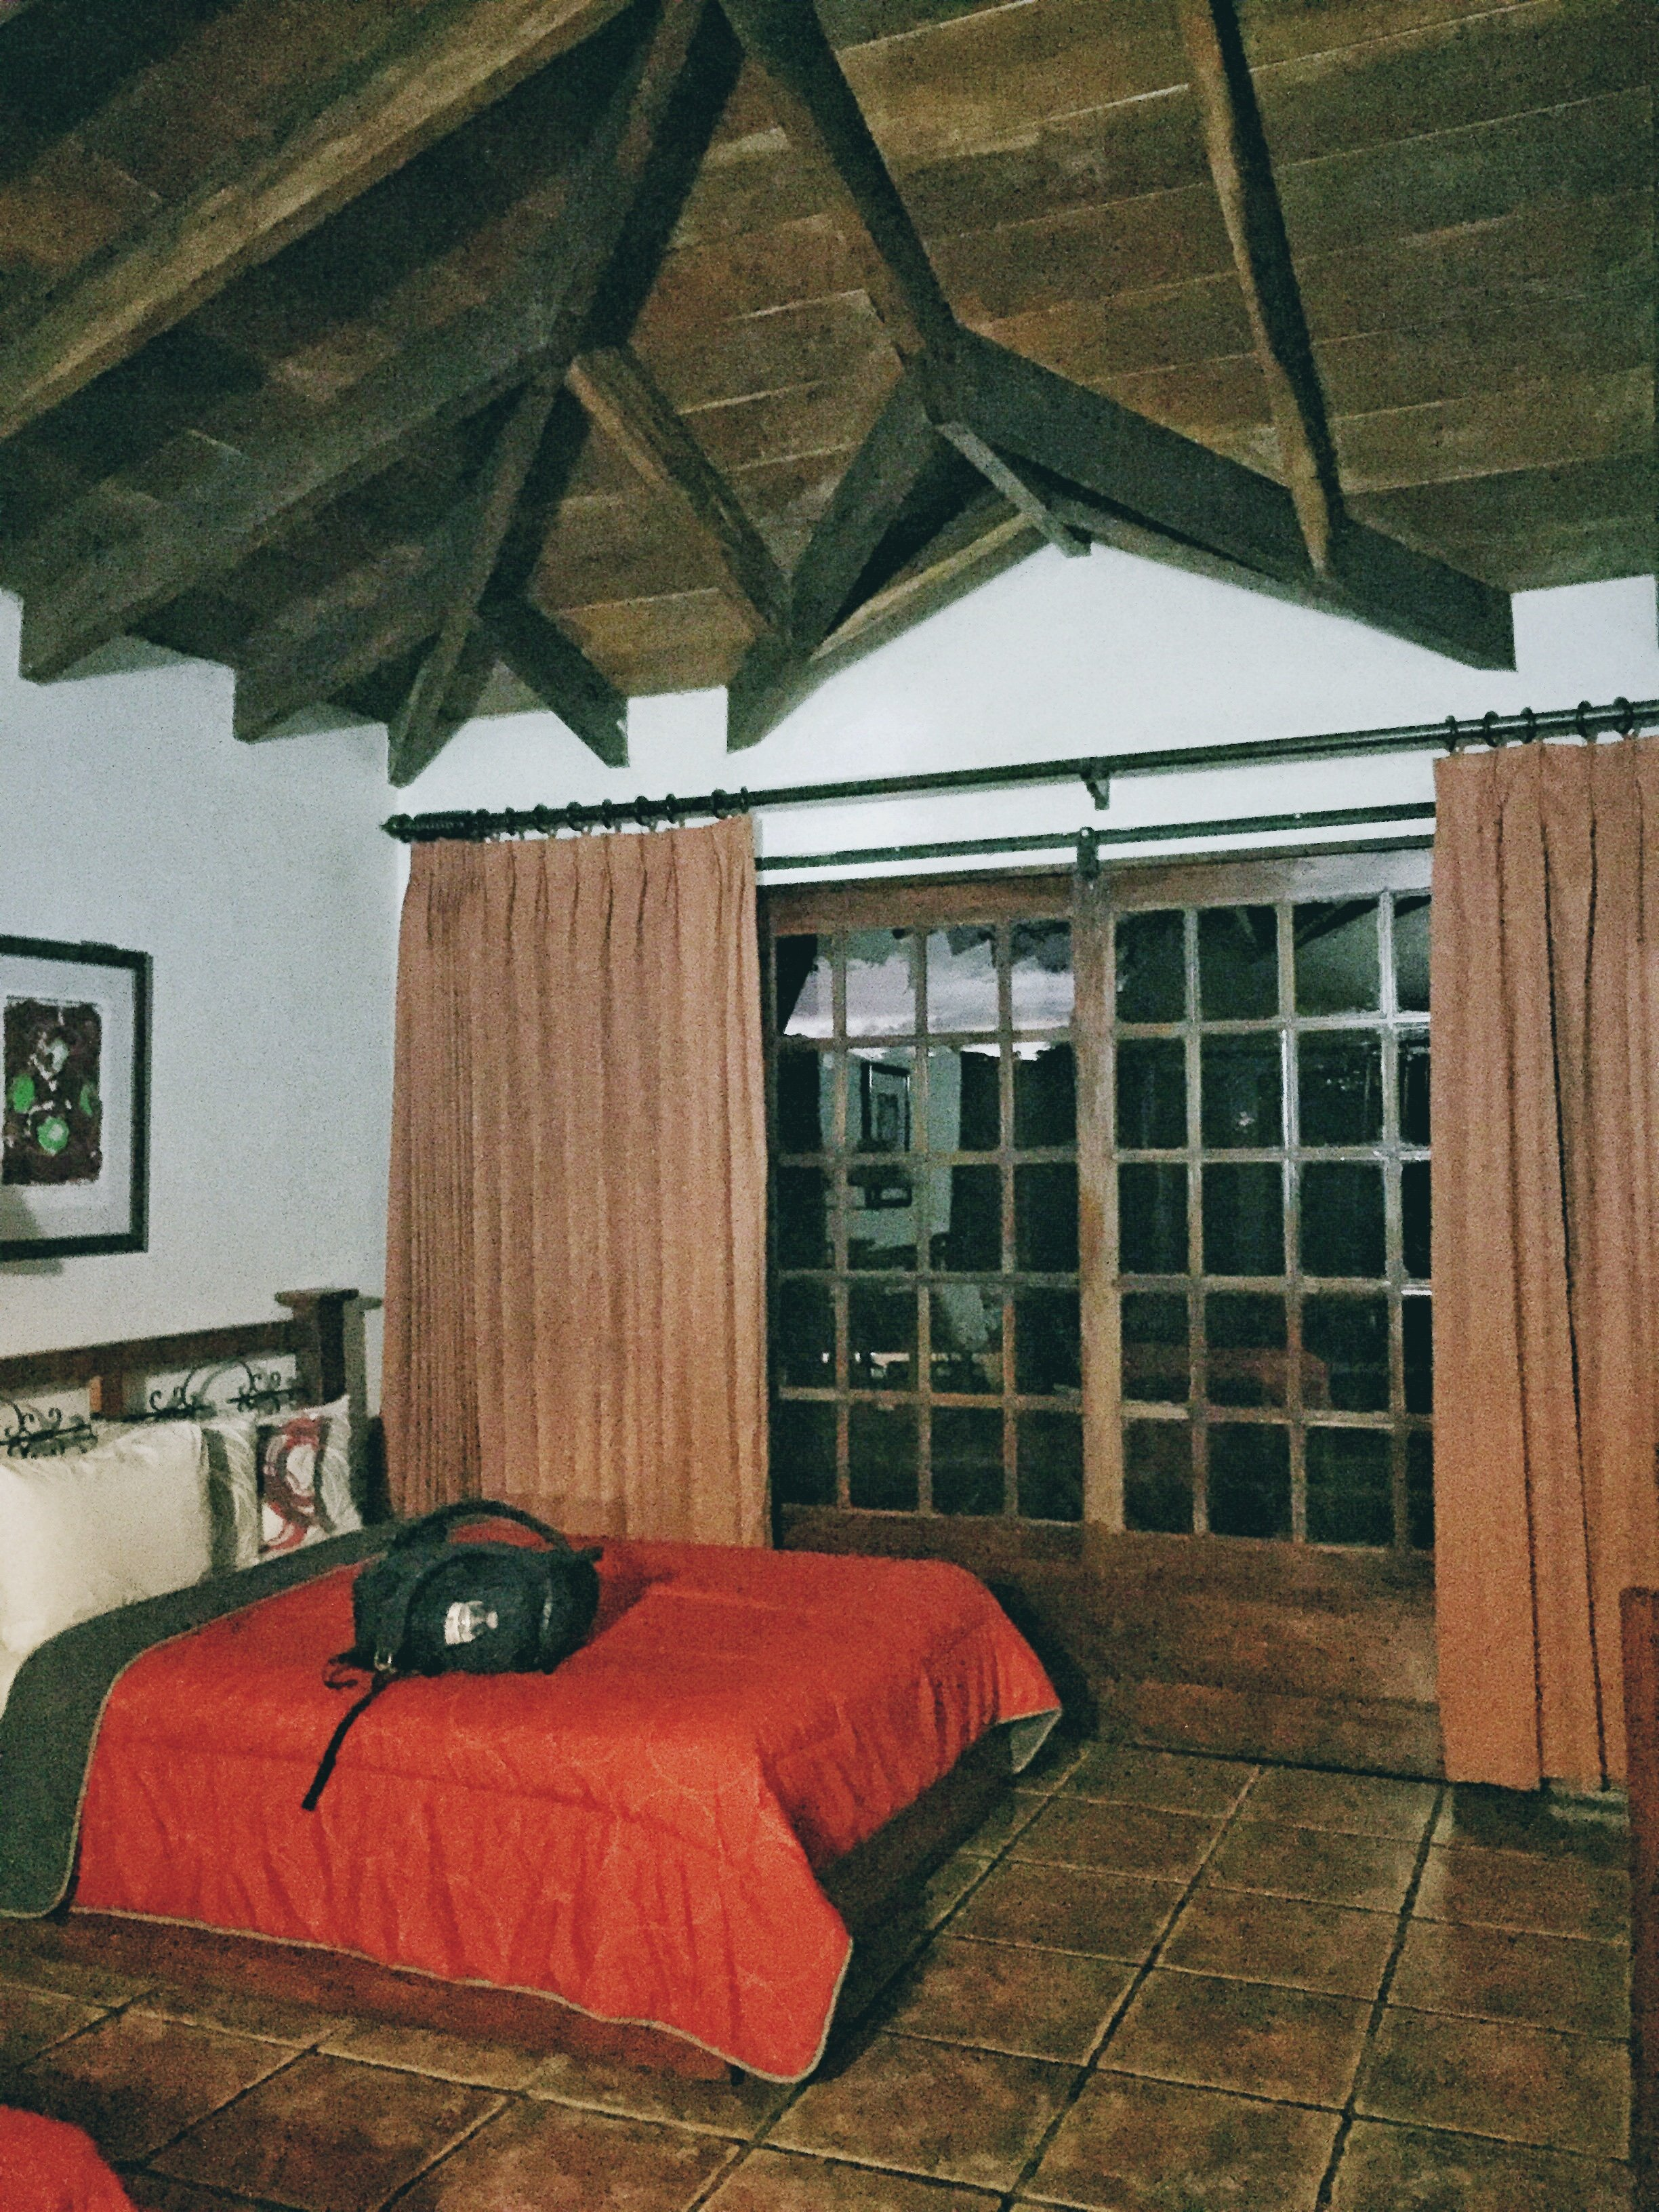 Our room at Borinquen Mountain Resort, Rincon De La Vieja, Costa Rica